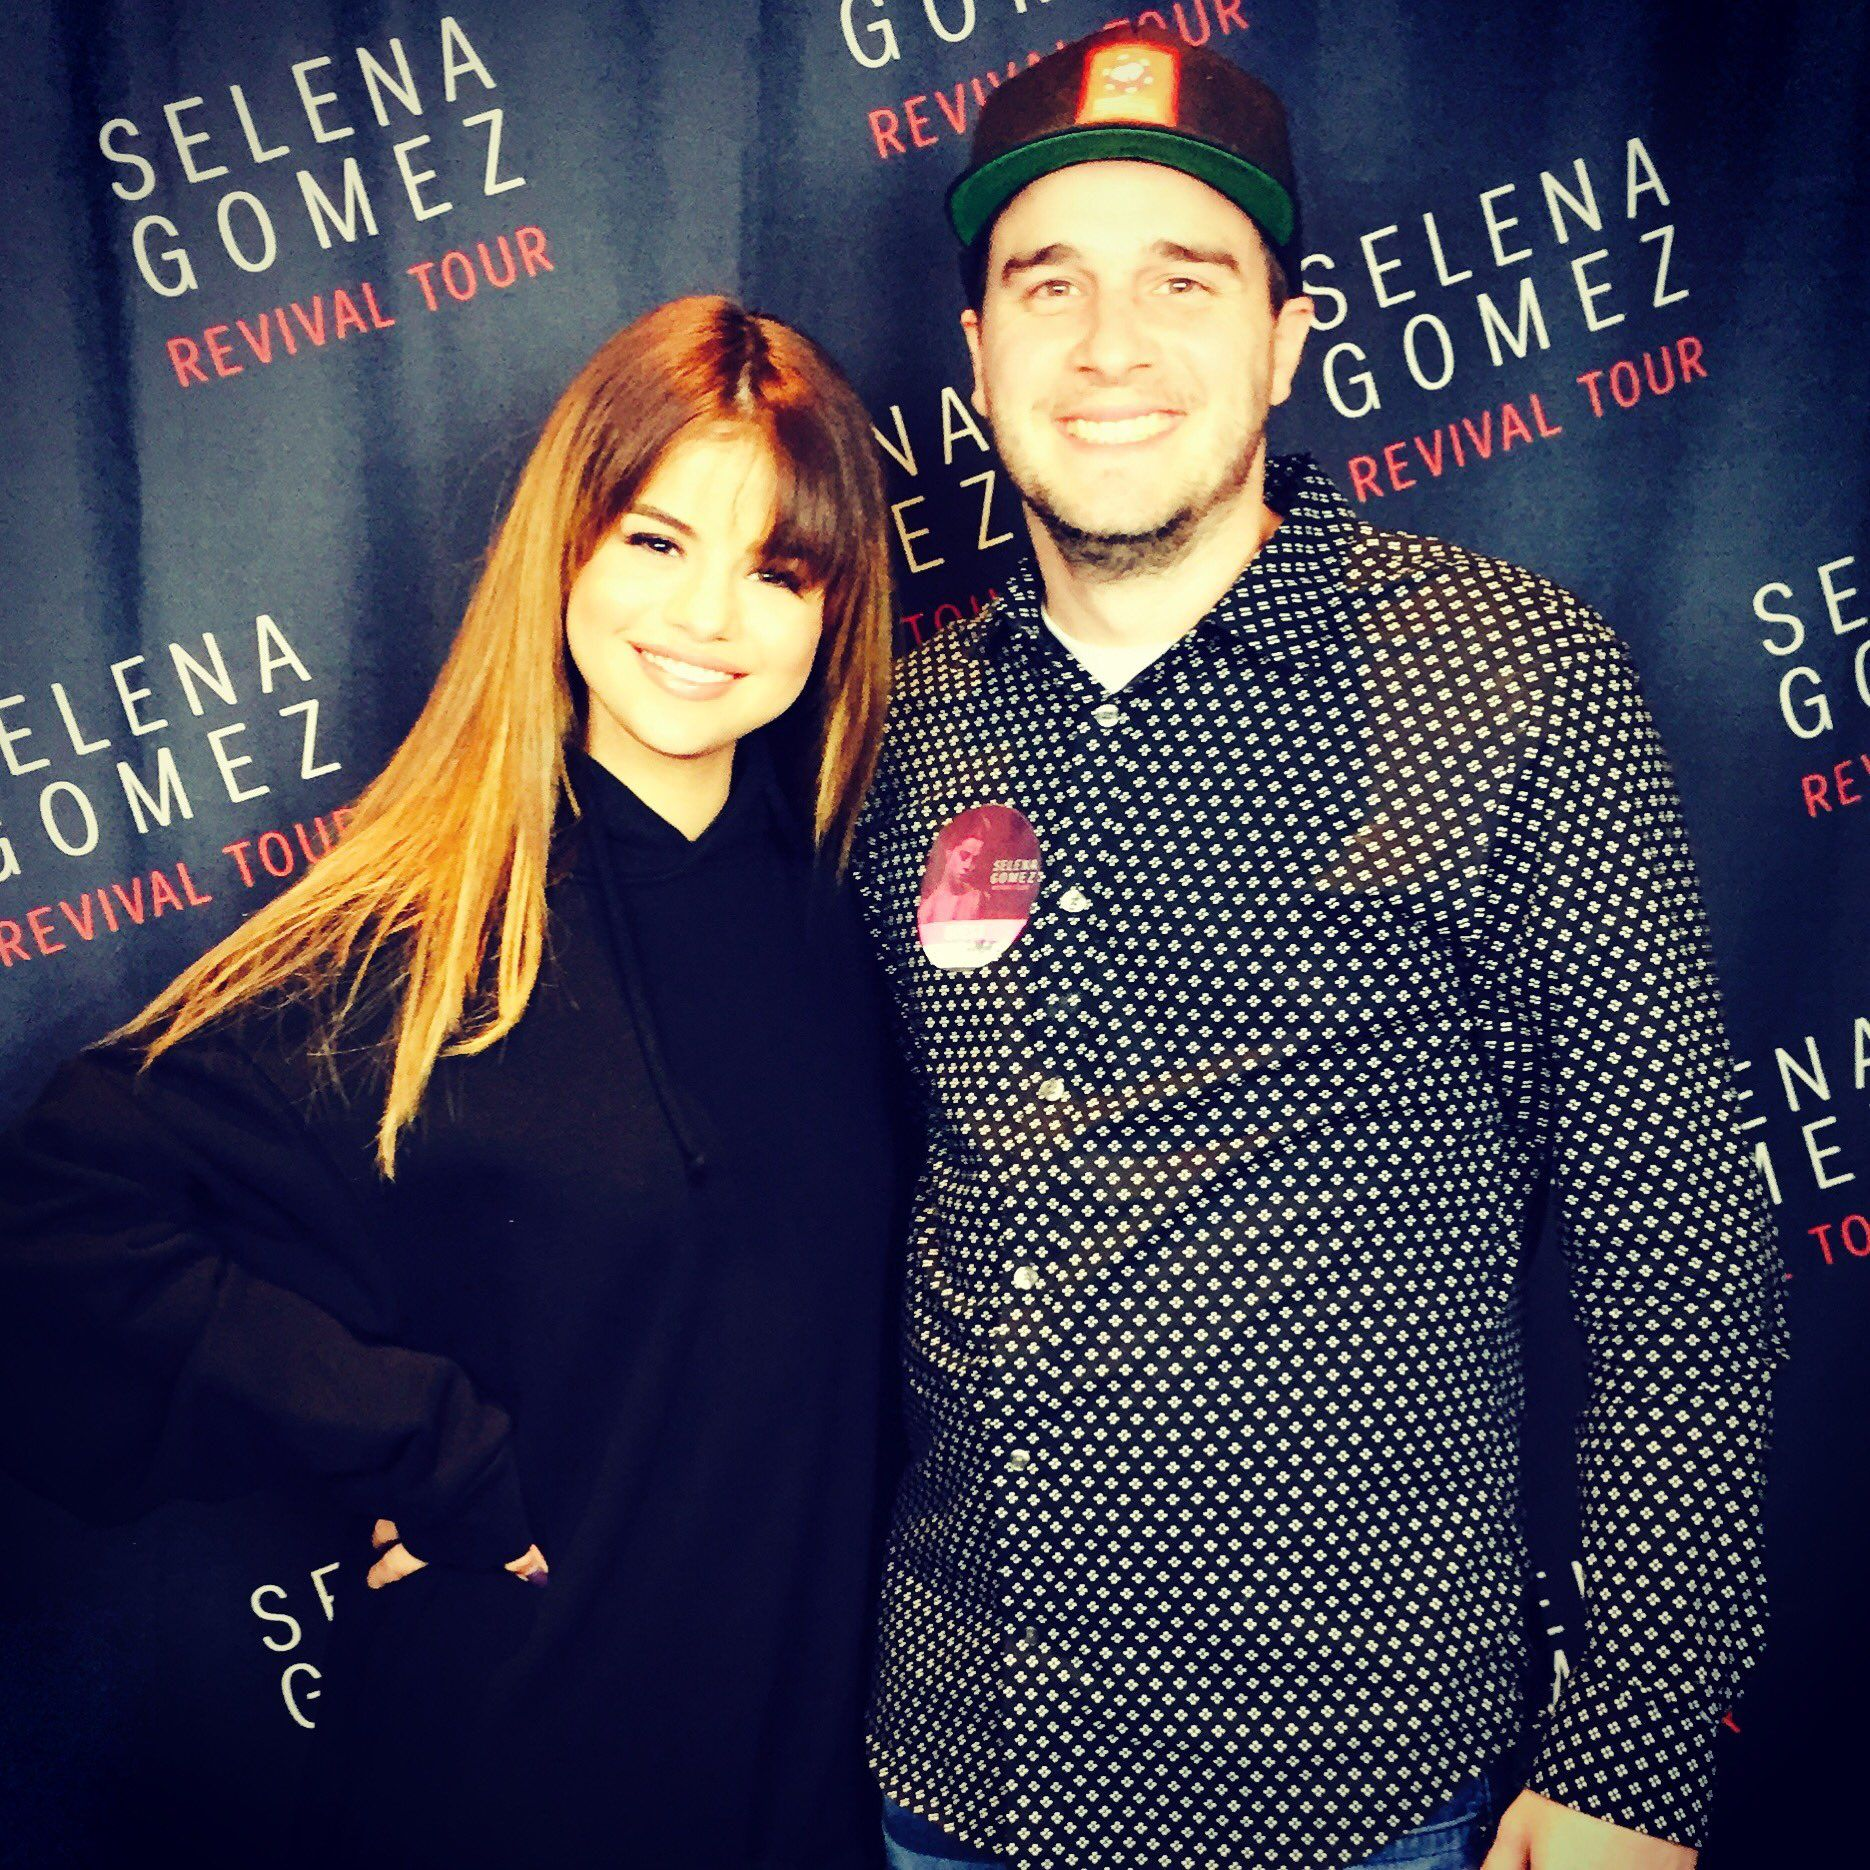 Selena Gomez Revival Tour Meet And Greet Google Search Revival